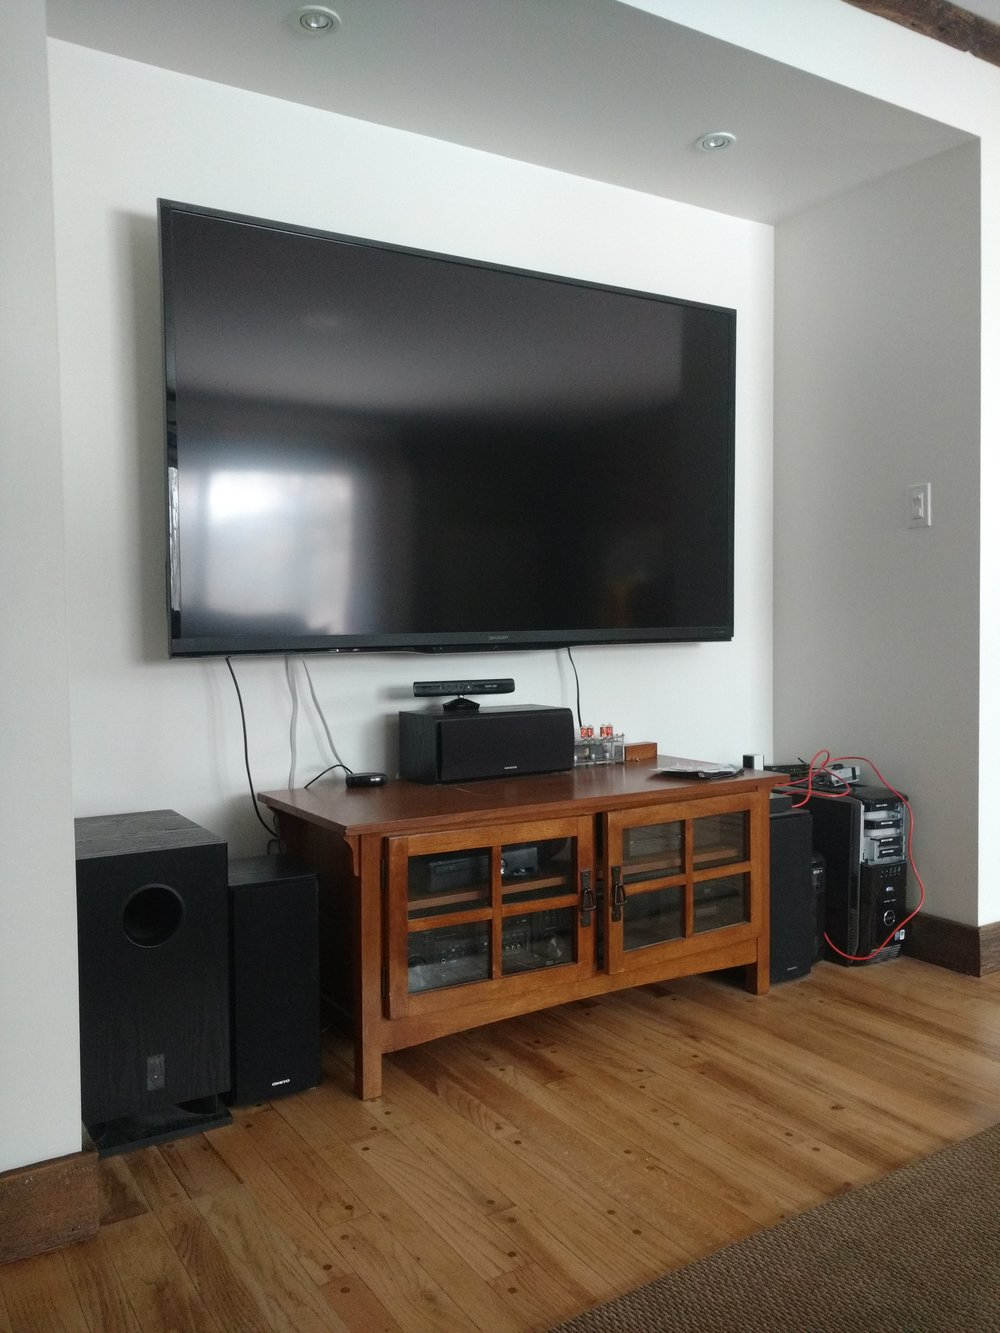 """My husband """"rescued"""" our TV from the garbage and fixed a few blown out parts. Andy is great about reusing and repurposing. He certainly does come home with some treasures."""